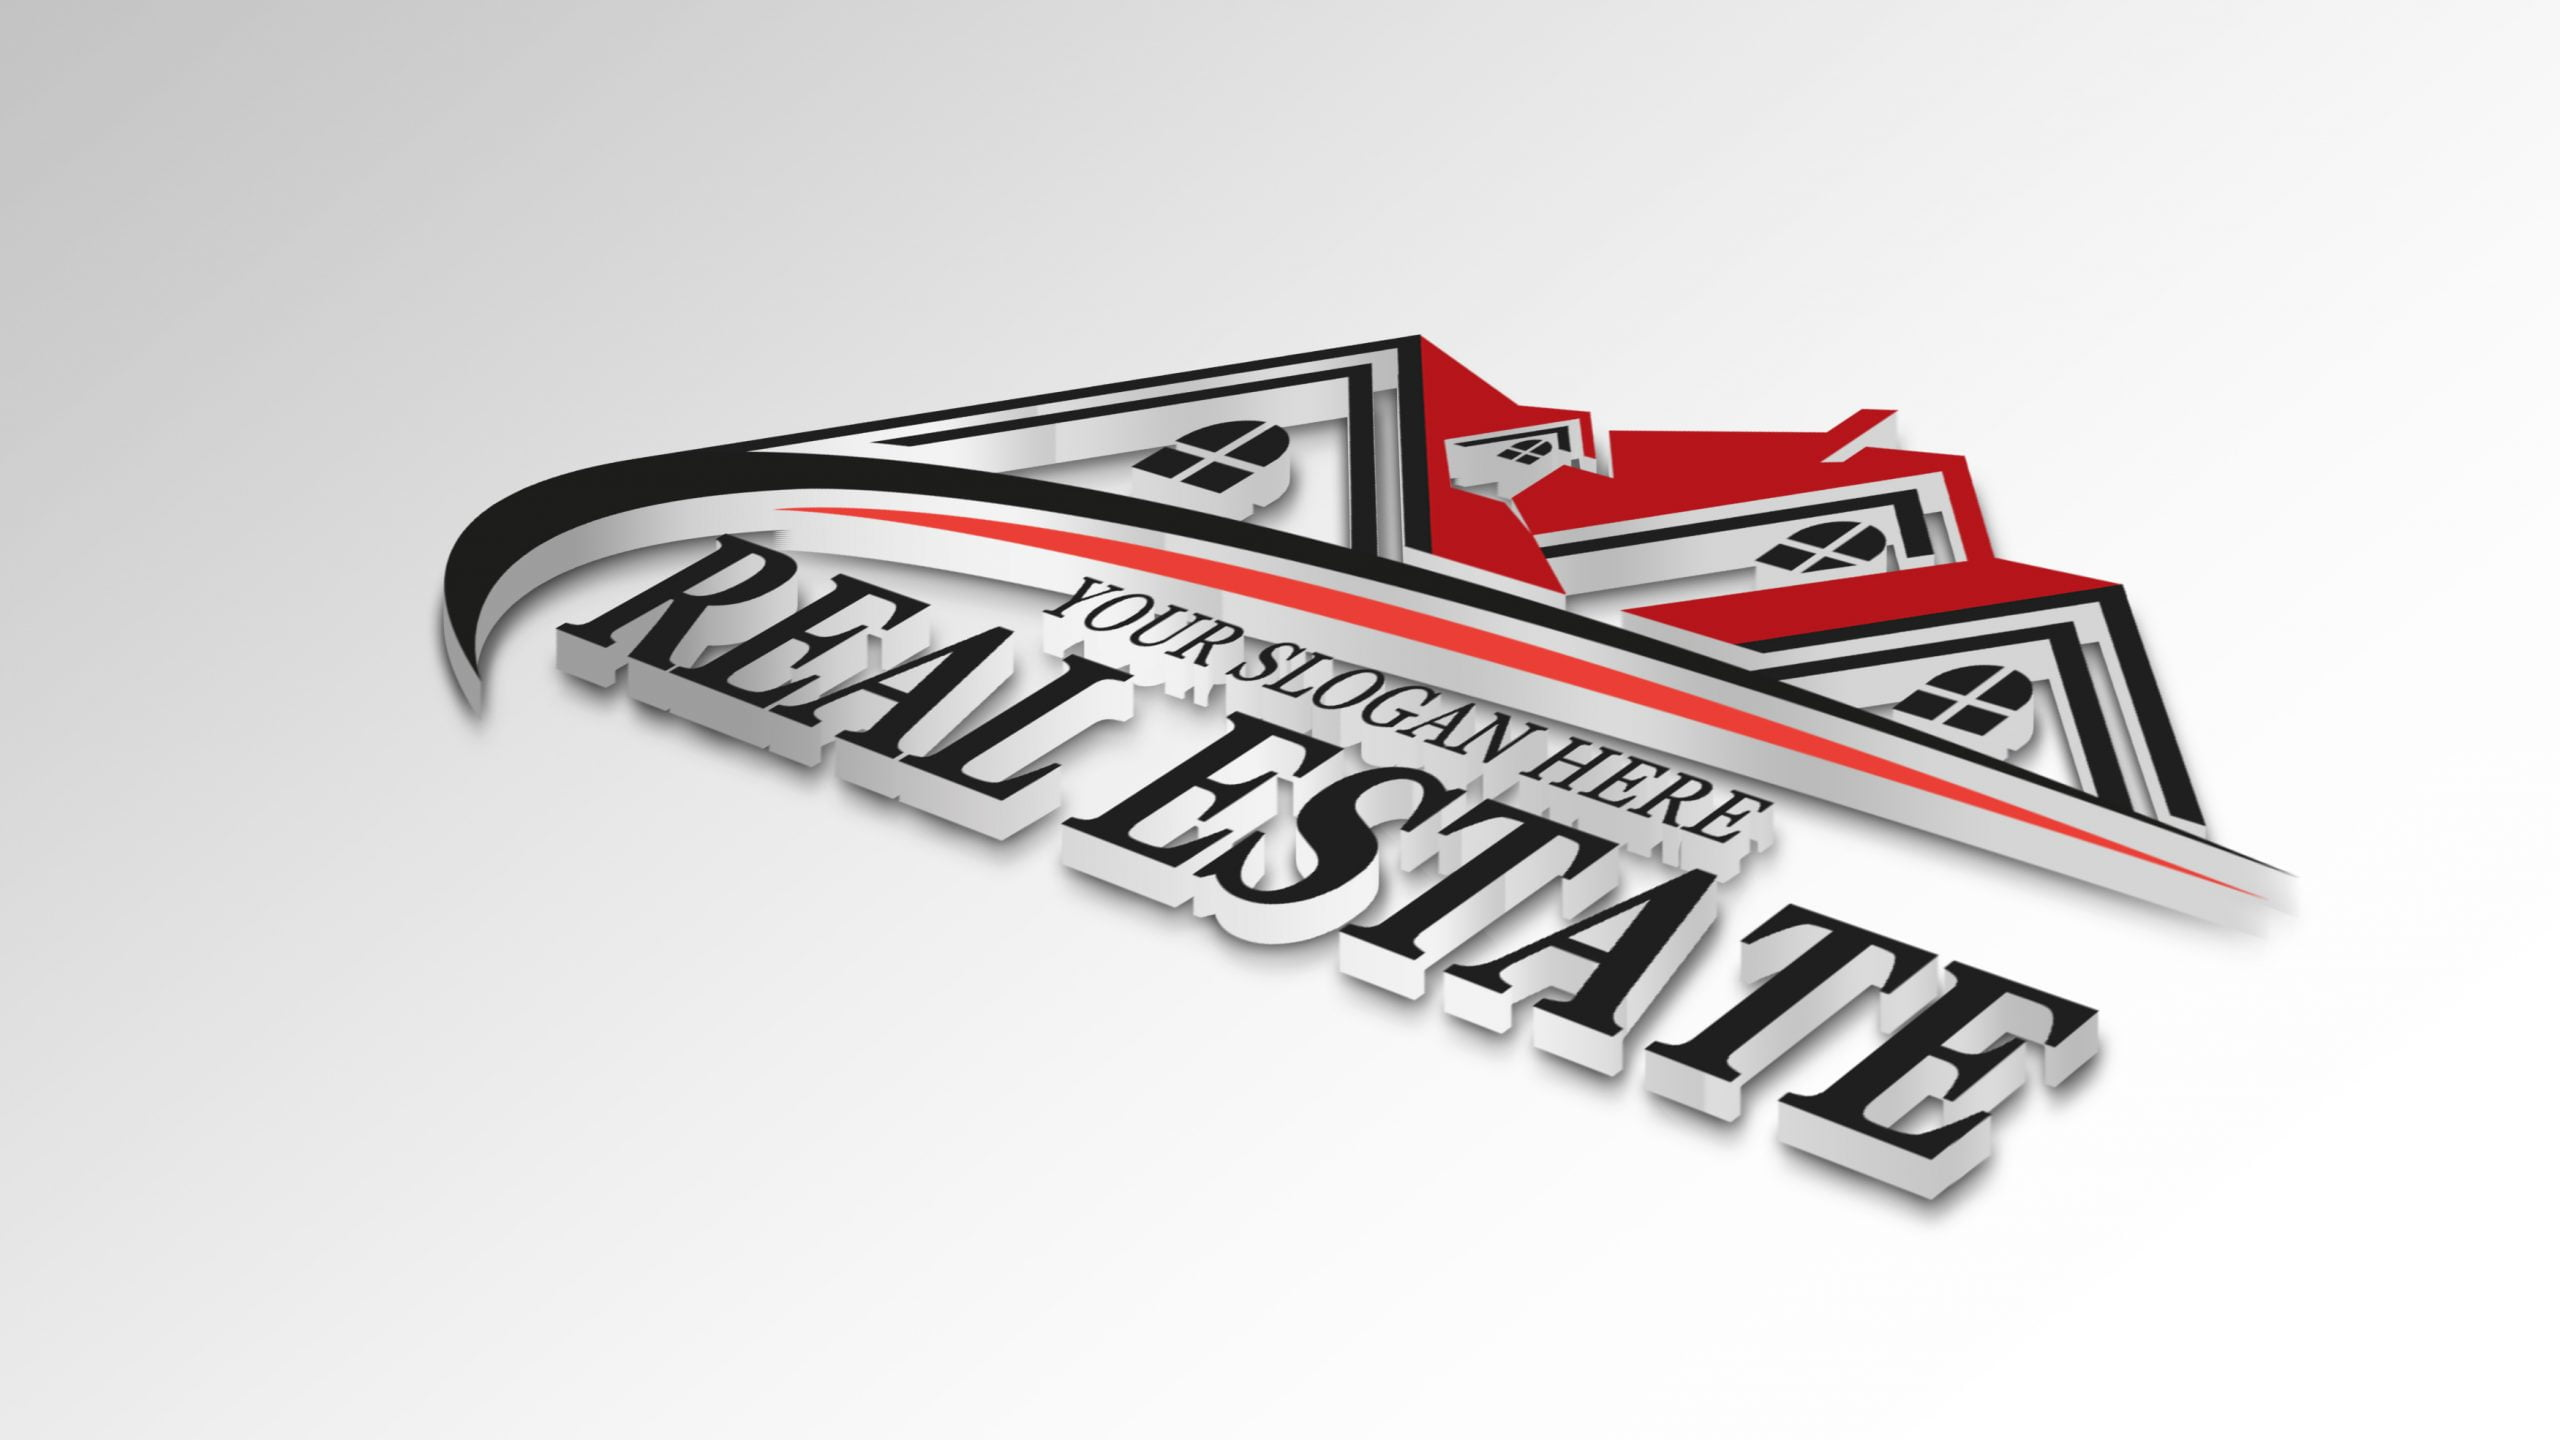 3d Real Estate logo on white paper